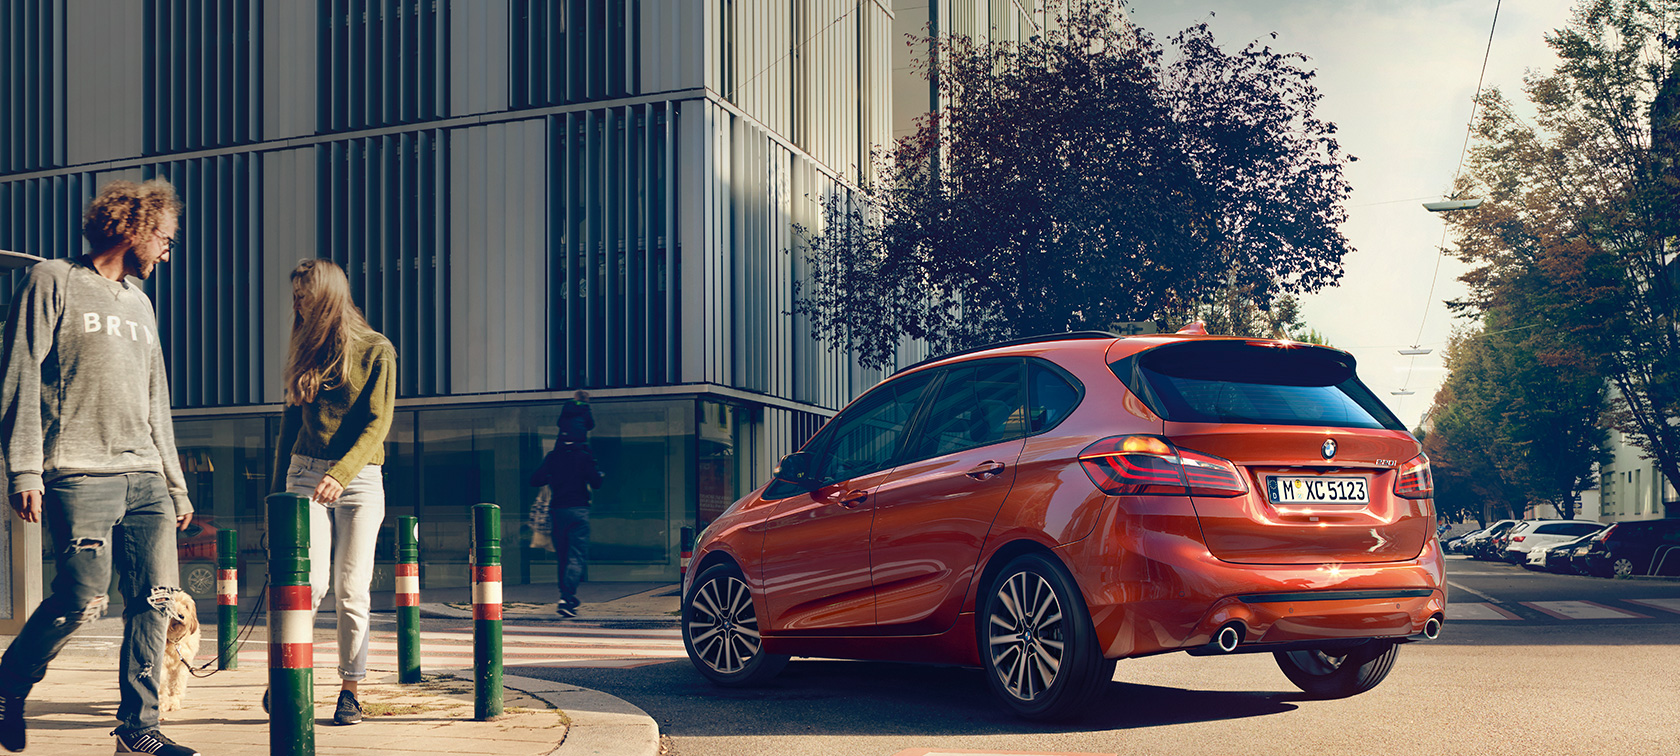 BMW 2 Series Active Tourer 220i F45 Sunset Orange metallic three-quarter rear view driving on the road